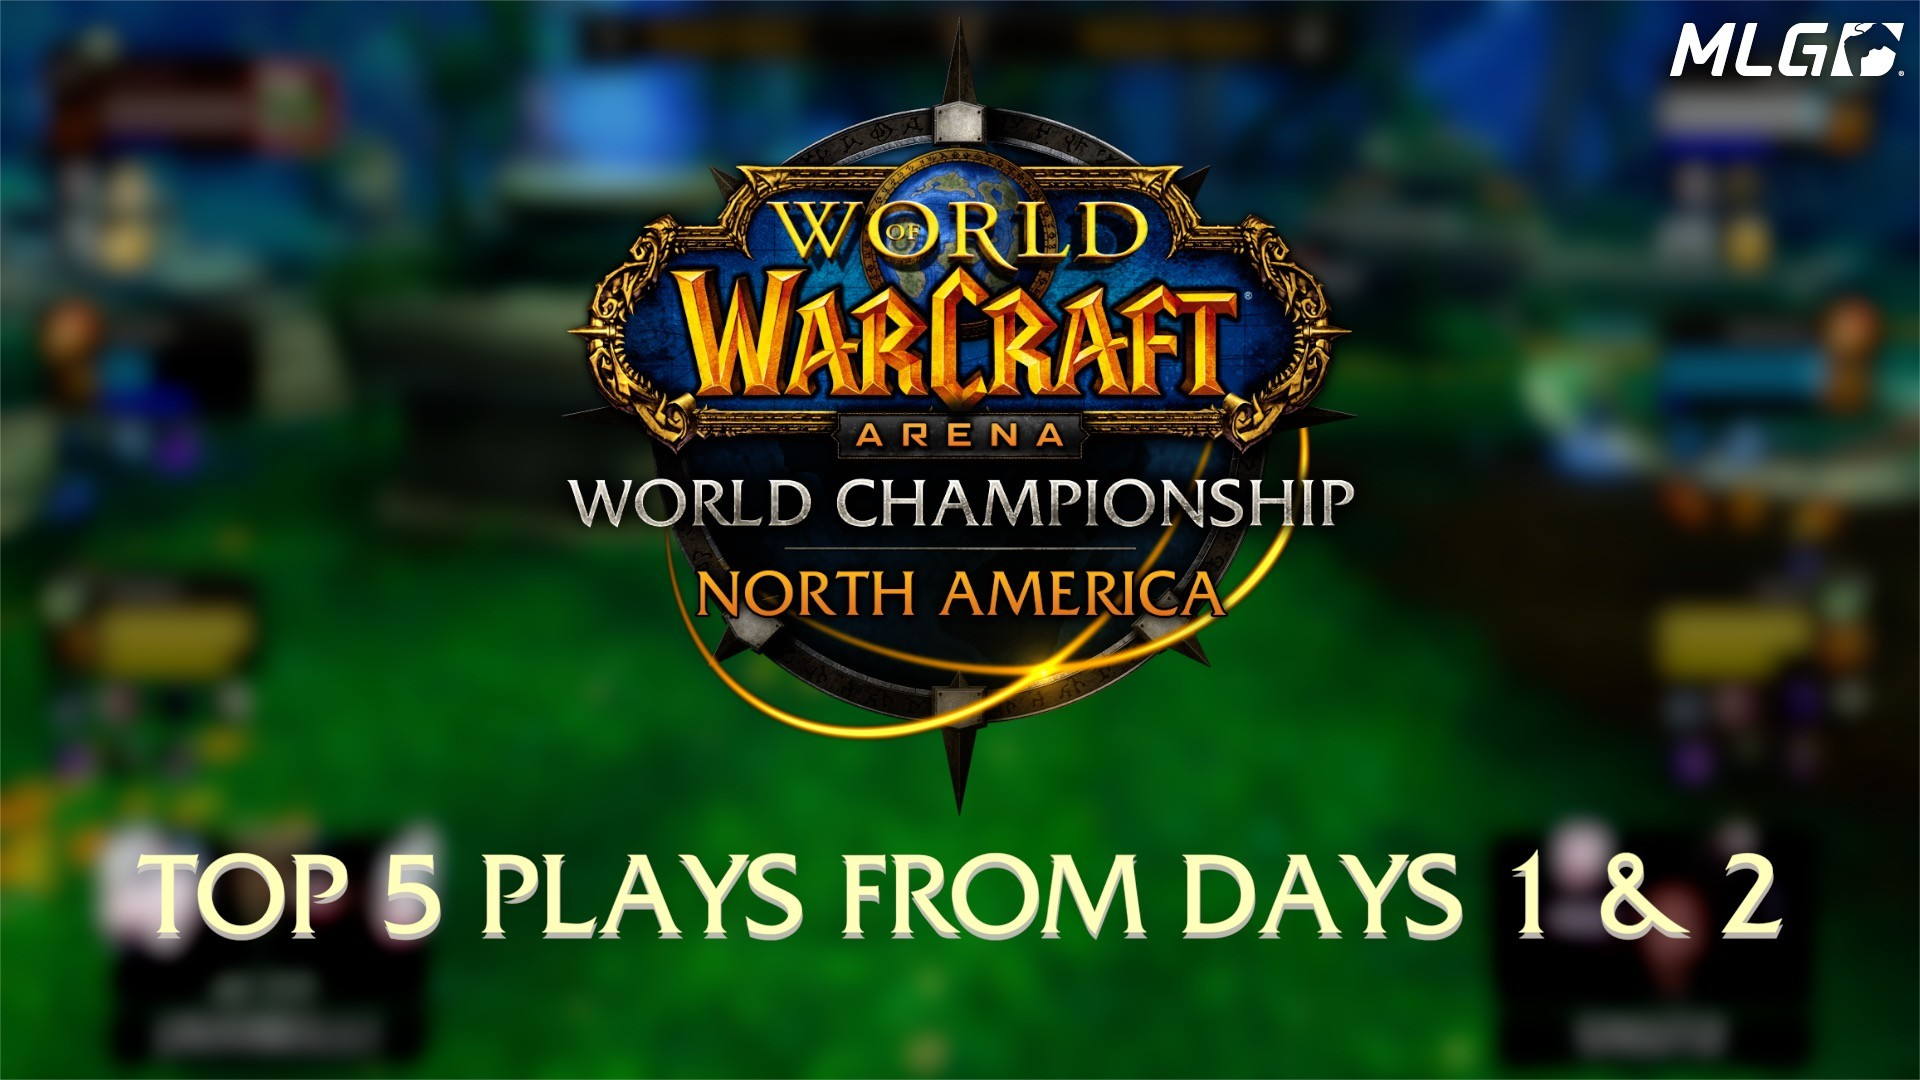 TOP 5: What plays from WOW Champs made the cut